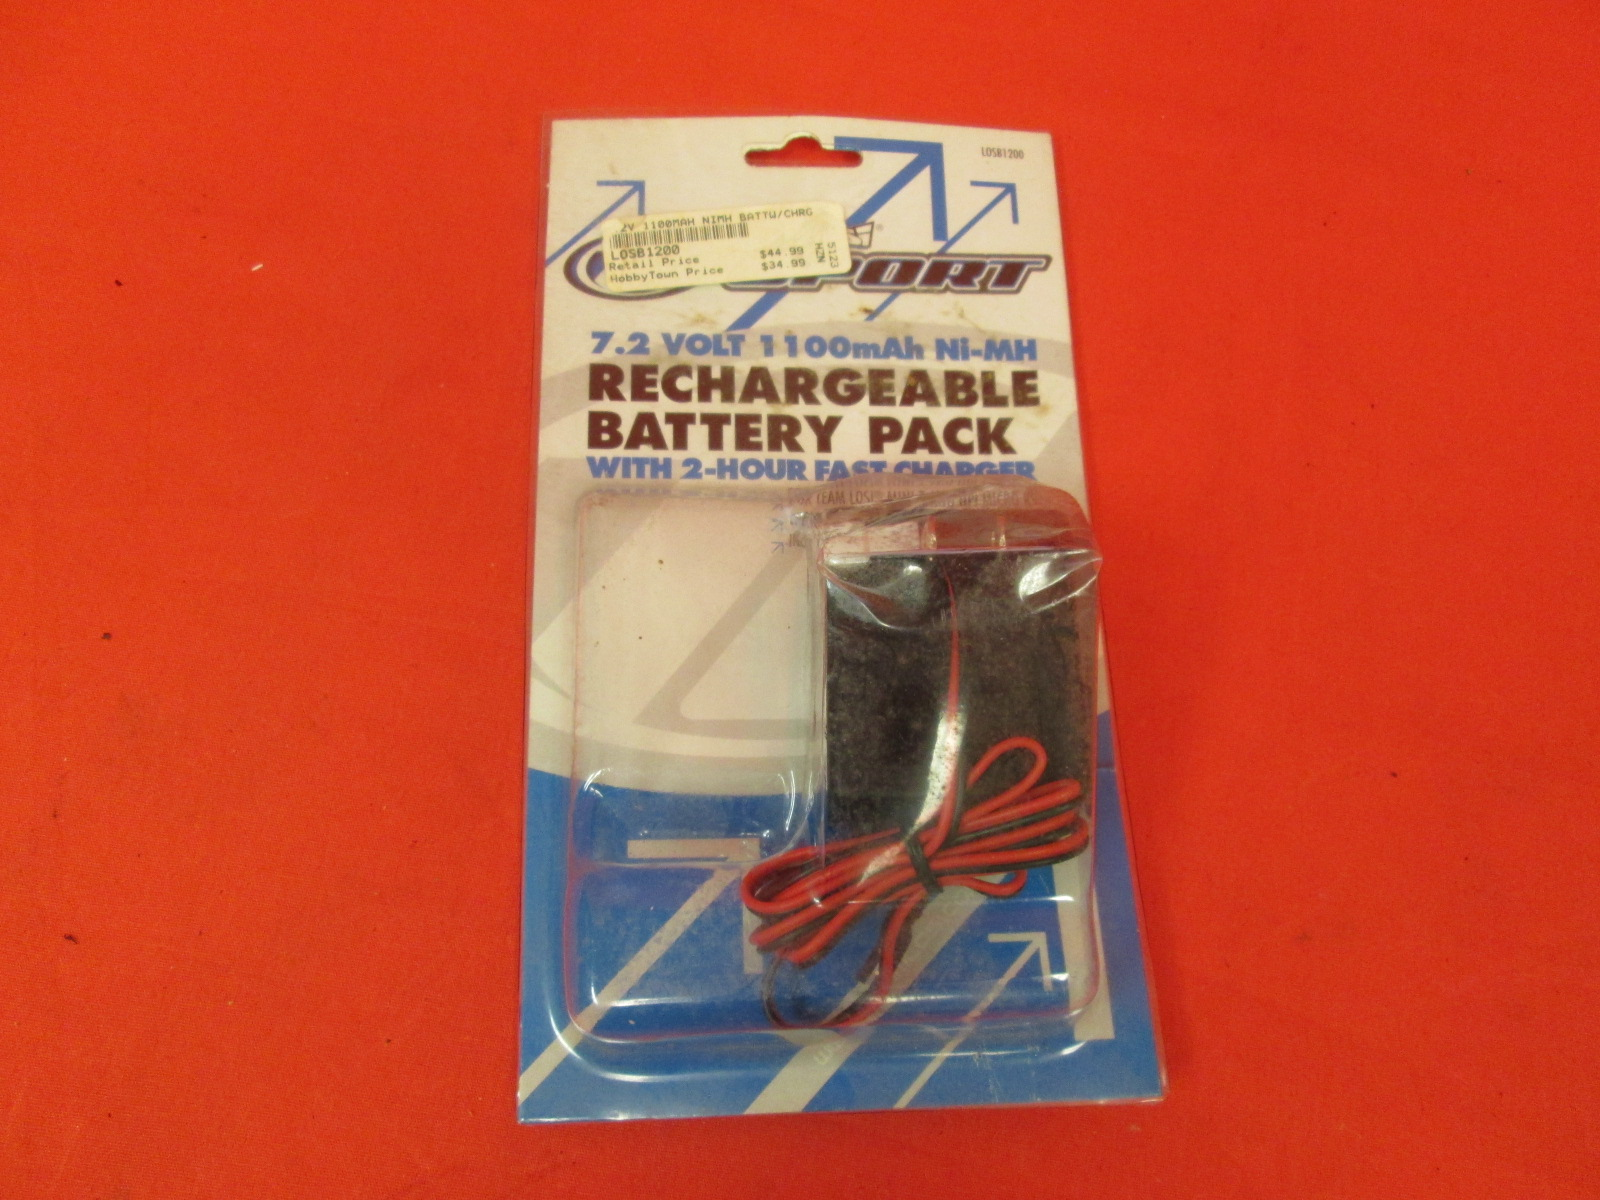 7.2 Volt 1100MAH Ni-Mh Rechargeable Battery Pack Toy